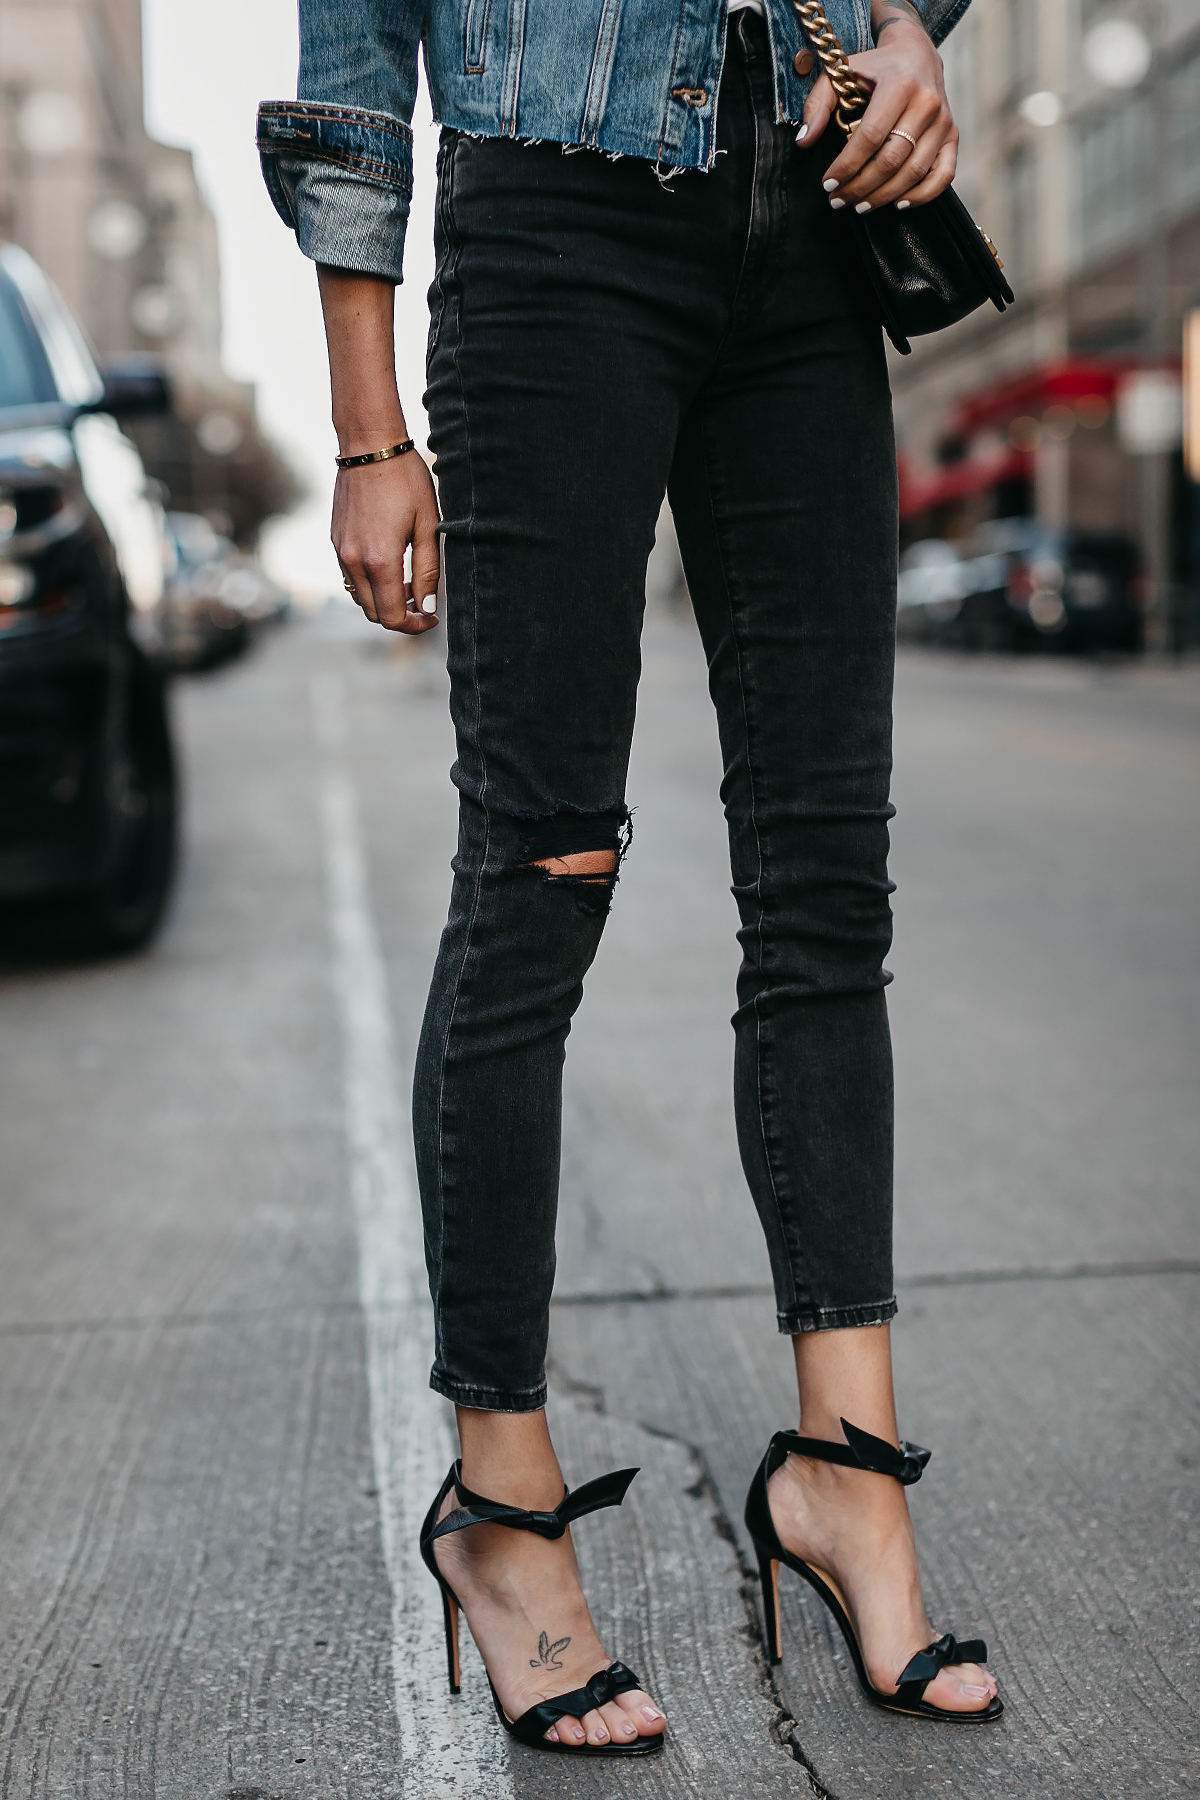 Blonde Woman Wearing Joes Jeans Black Ripped Skinny Jeans Denim Jacket Alexandre Birman Black Bow Heels Fashion Jackson Dallas Blogger Fashion Blogger Street Style